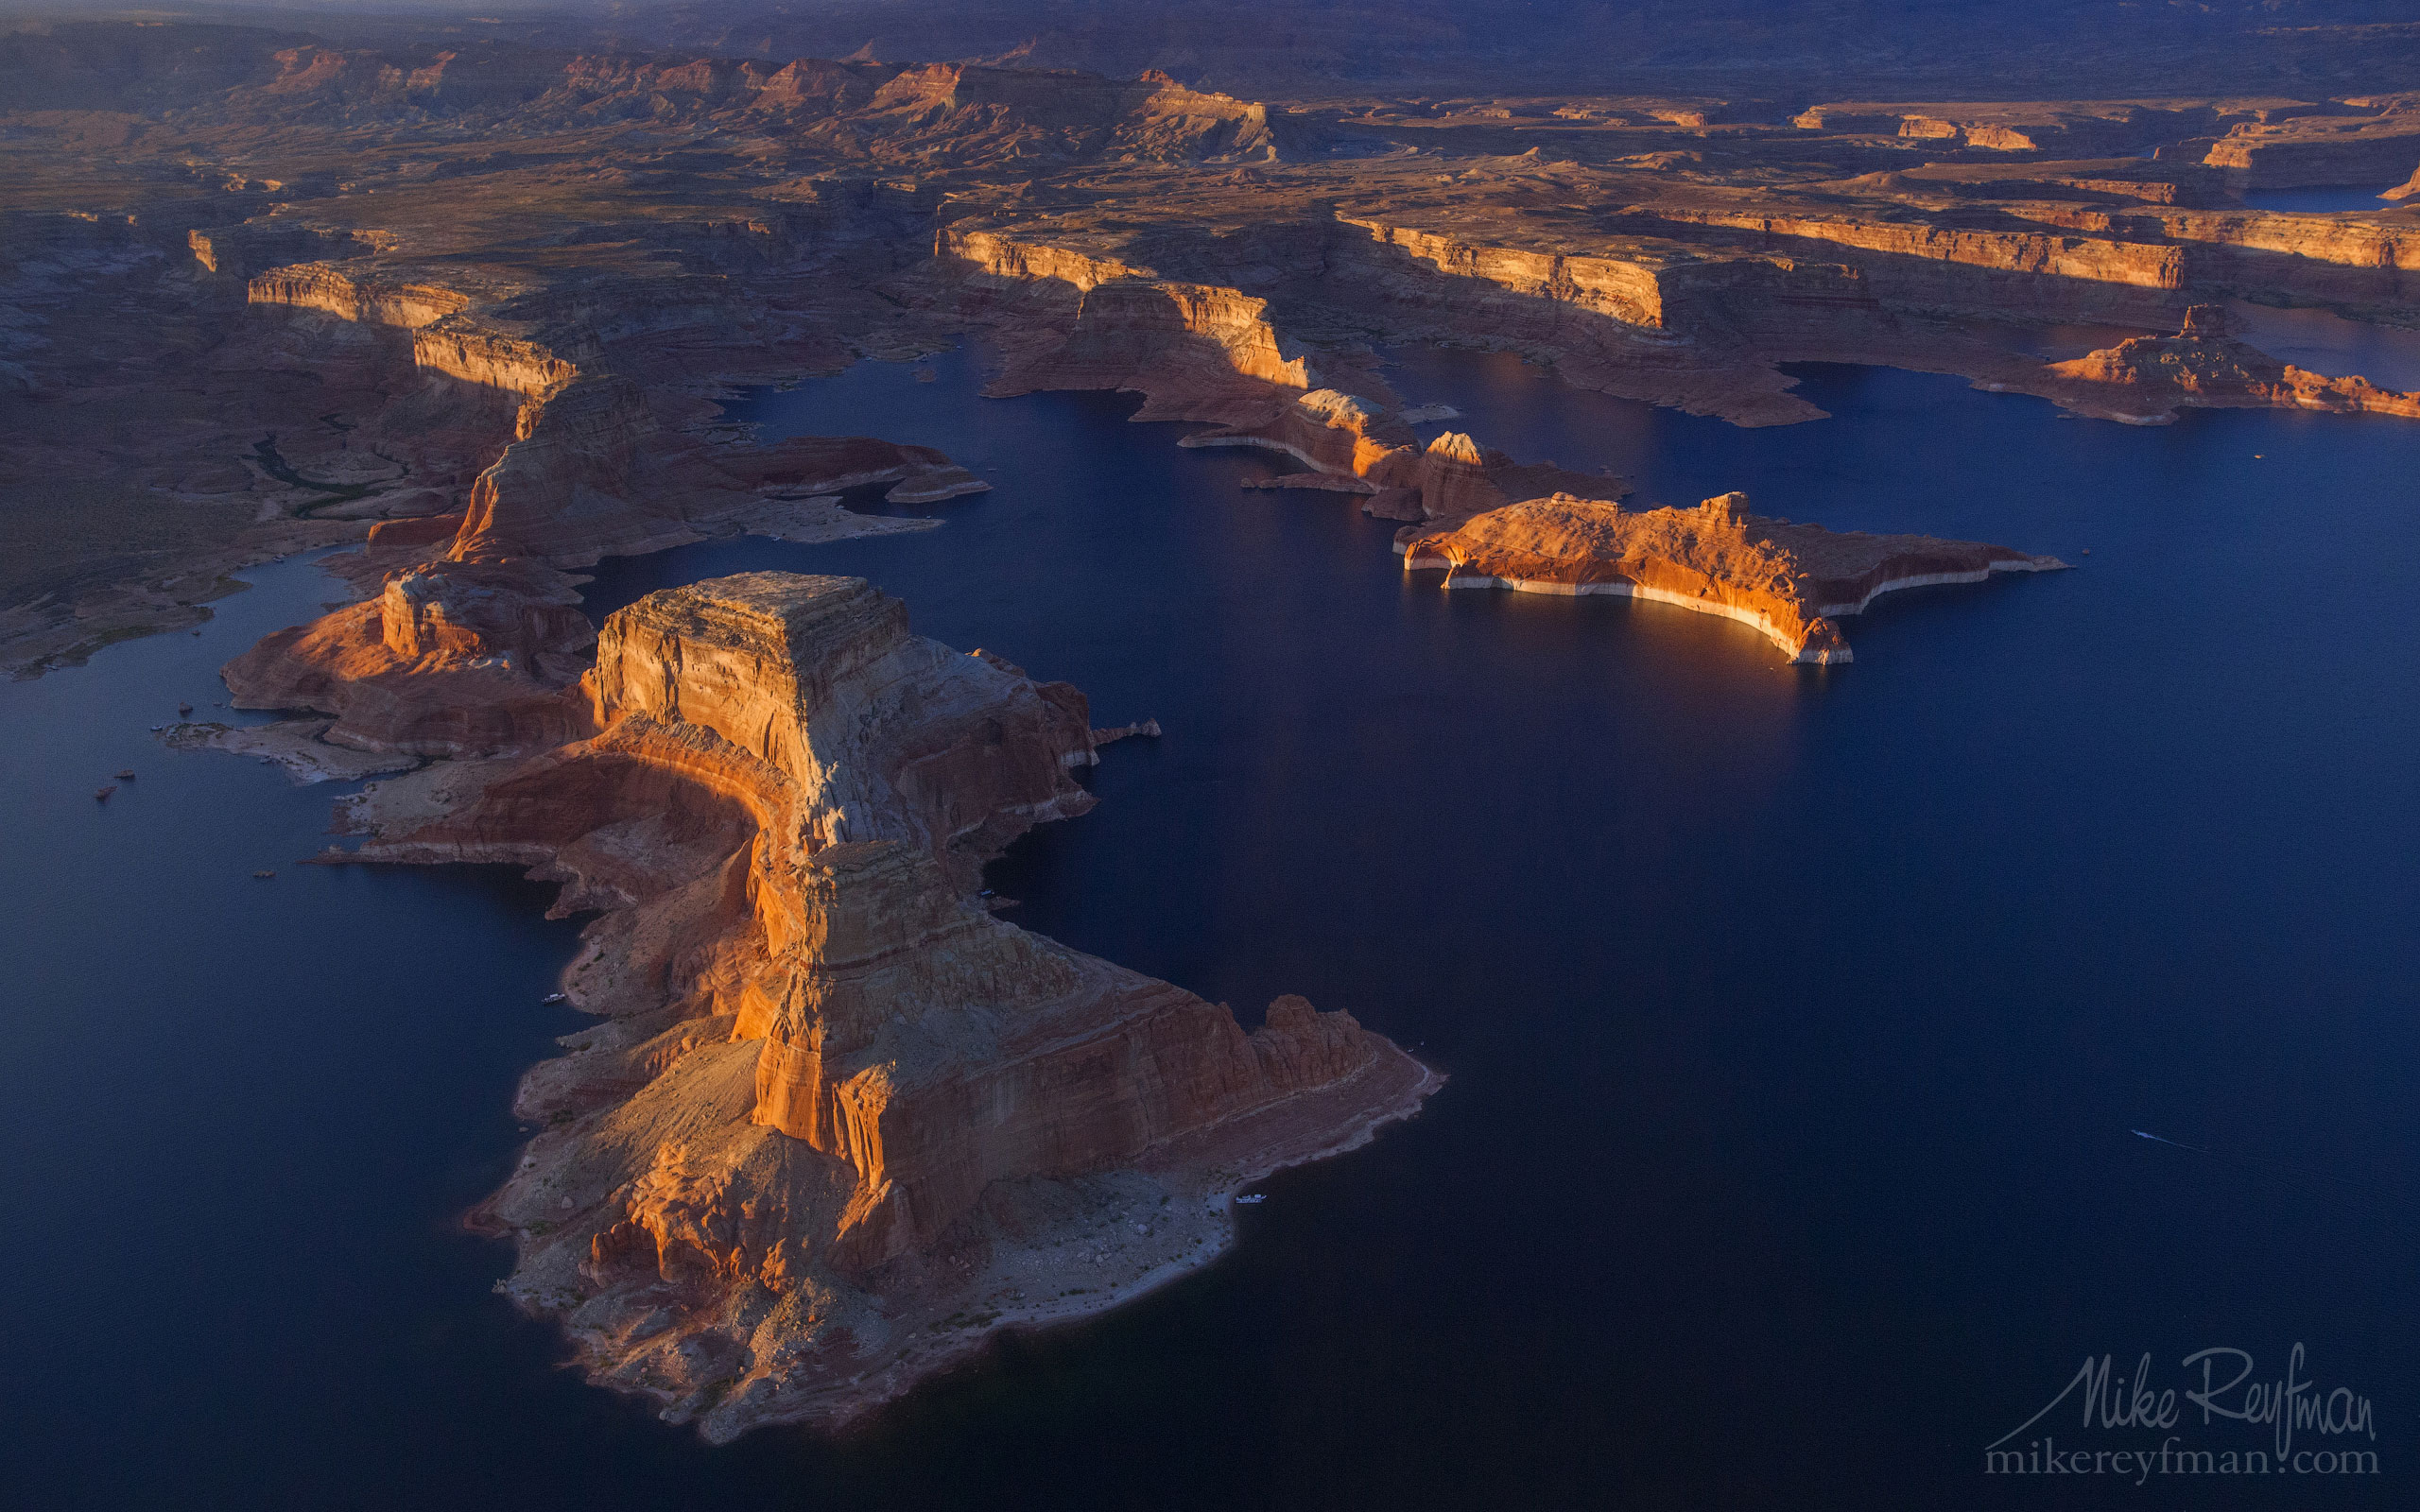 Gunsight Butte and North Side of Padre Bay. Glen Canyon NRA, Lake Powell, Utah/Arizona, USA. Aerial. 013-LP3_O3X5041.jpg - Lake Powell, Glen Canyon NAR. Colorado and Sun Juan Rivers. Utah/Arizona, USA  - Mike Reyfman Photography